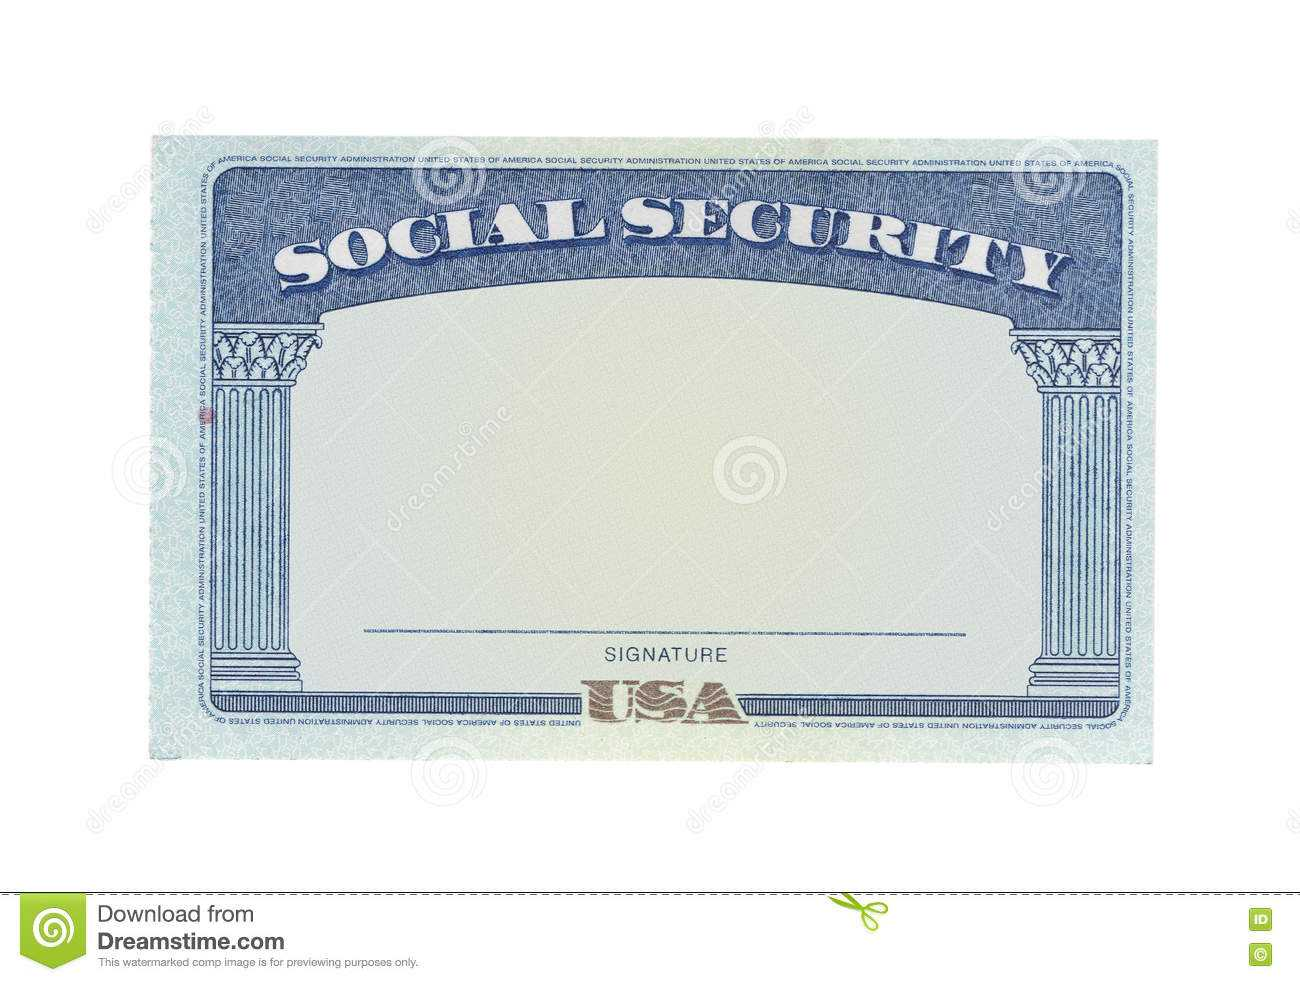 Blank Social Security Card Template Download - Great In Social Security Card Template Download